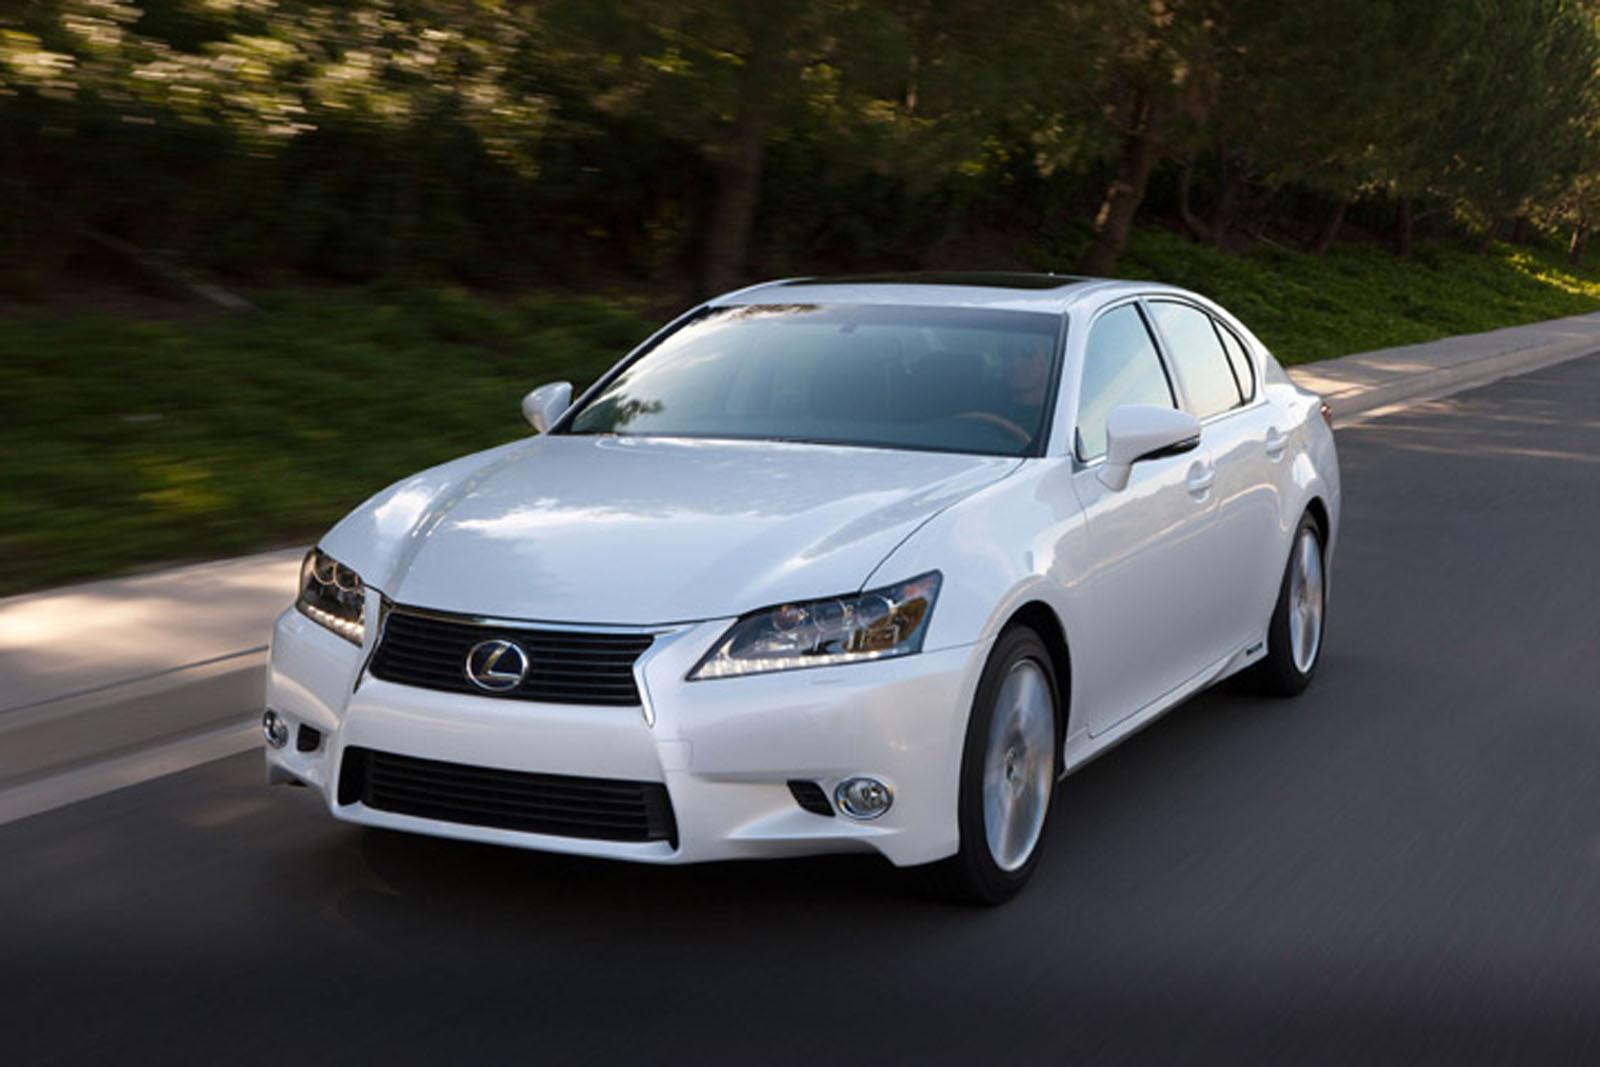 2015 lexus gs 450h adds f sport styling performance. Black Bedroom Furniture Sets. Home Design Ideas